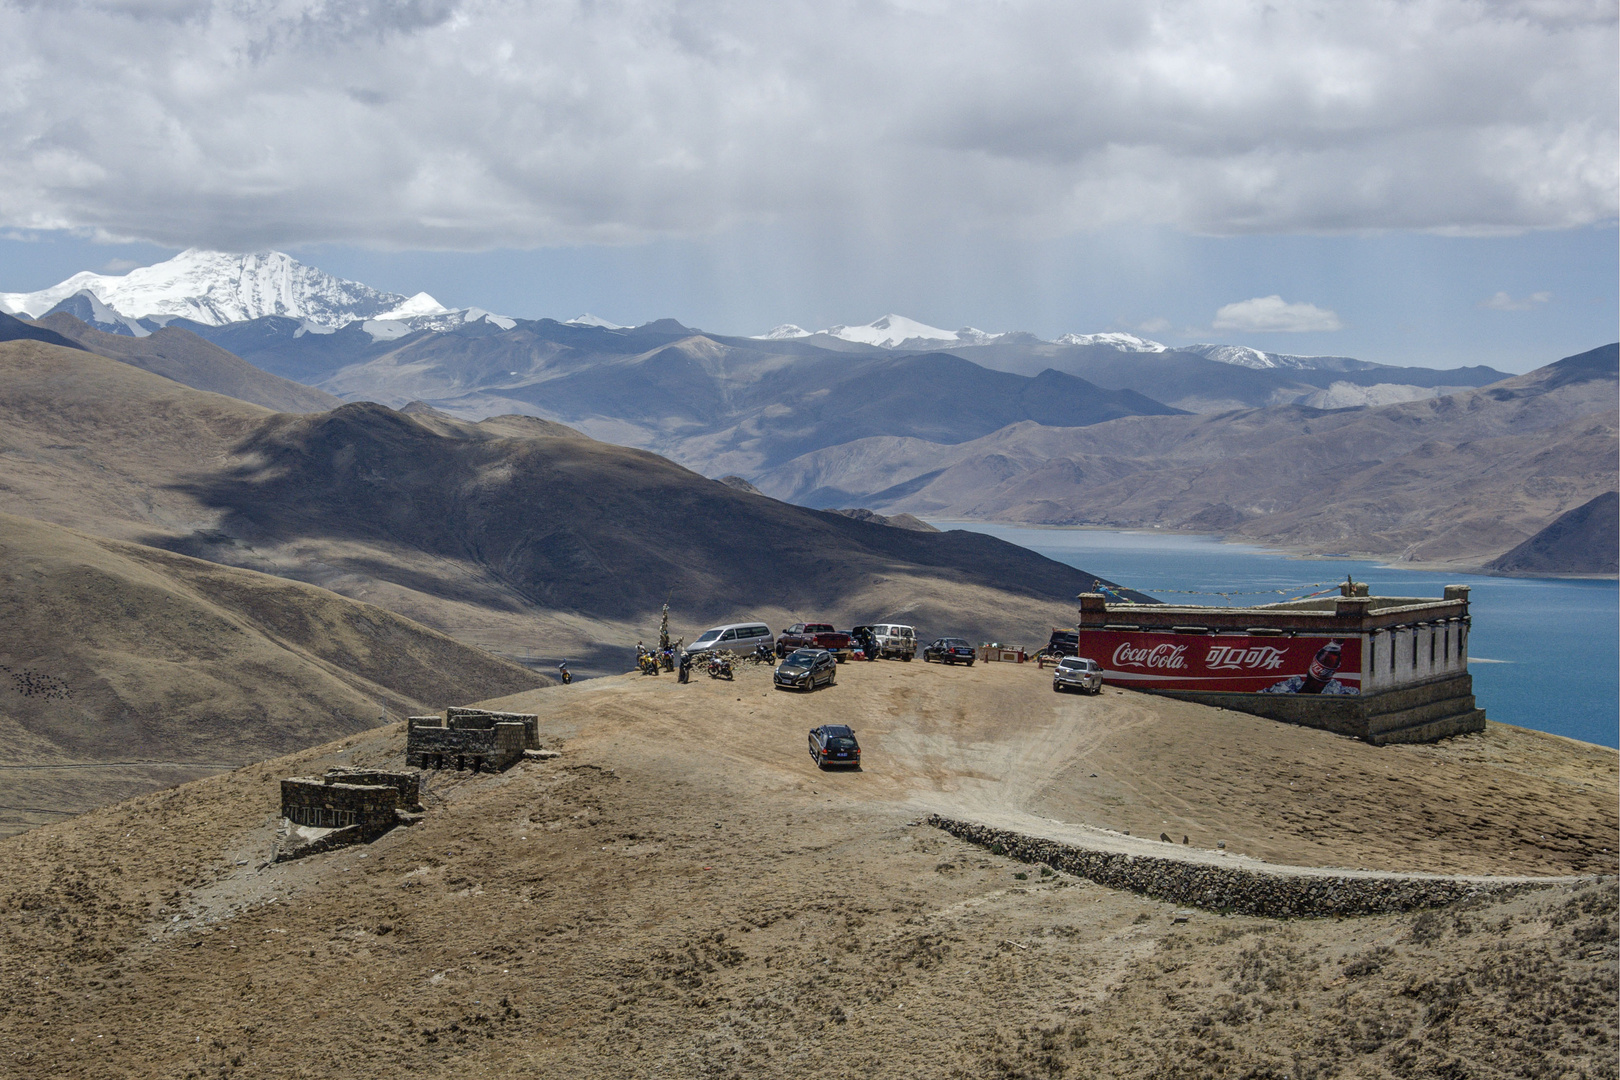 289 - Somewhere Between Gyantse and Lhasa (Tibet)